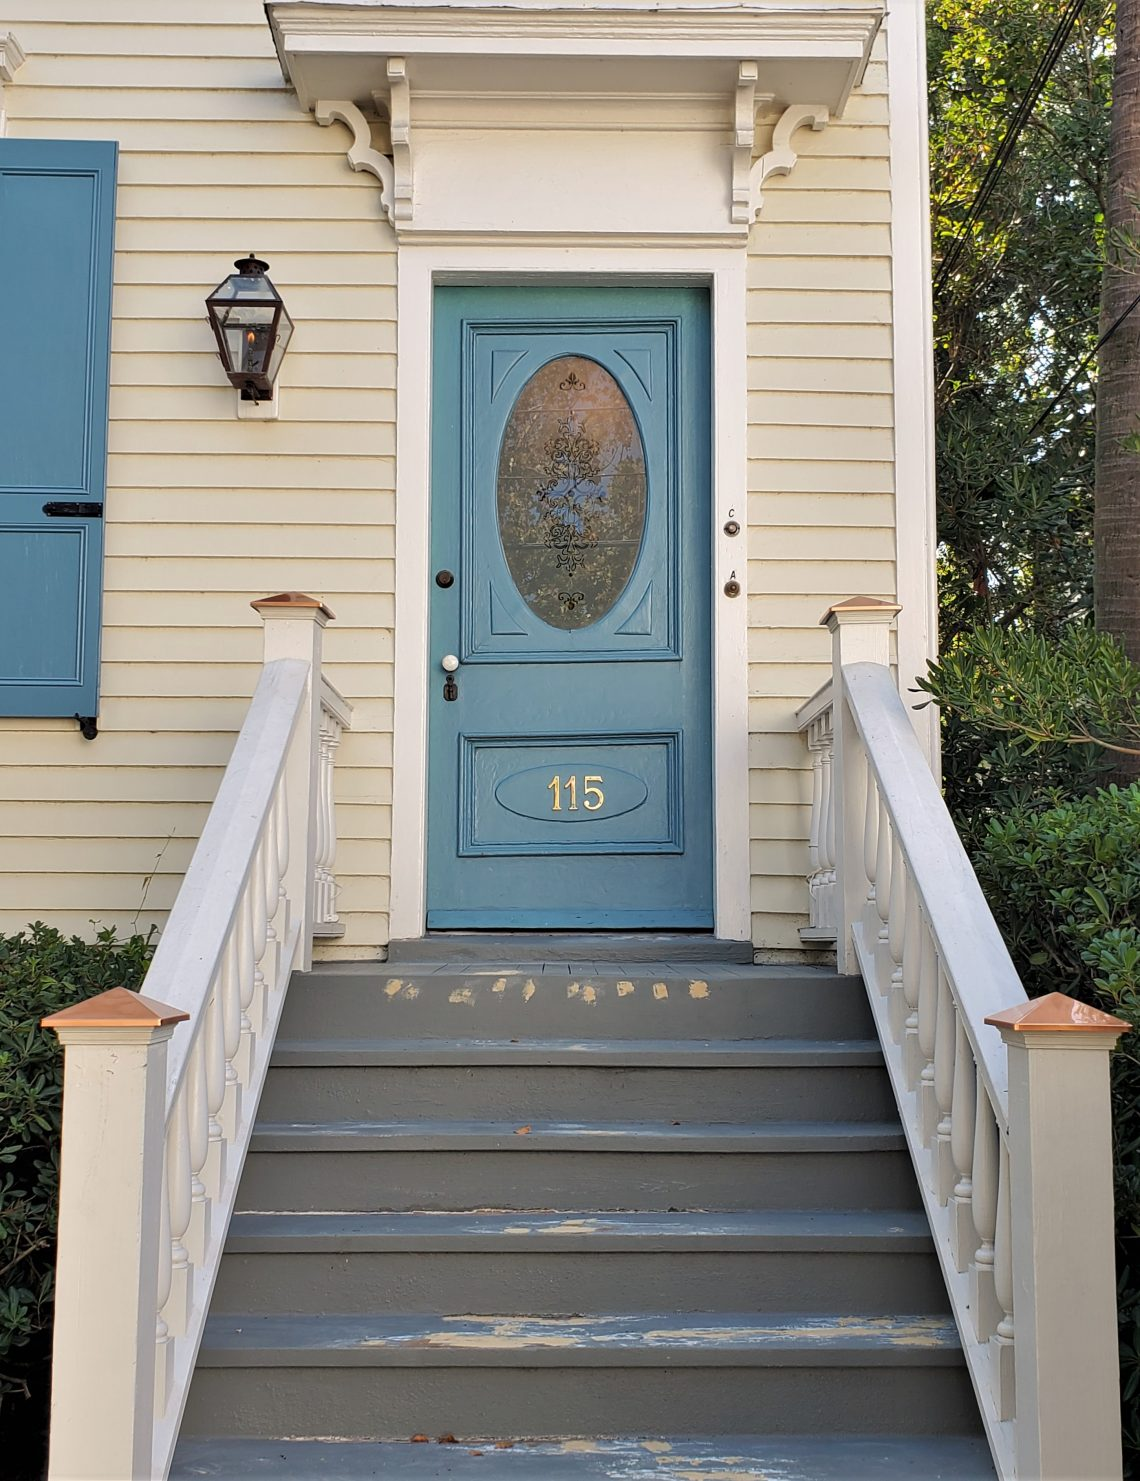 This attractive and welcoming door can be found on Rutledge Avenue, just down from Cannon Park -- where you can find the four remaining front columns of the old Charleston Museum.